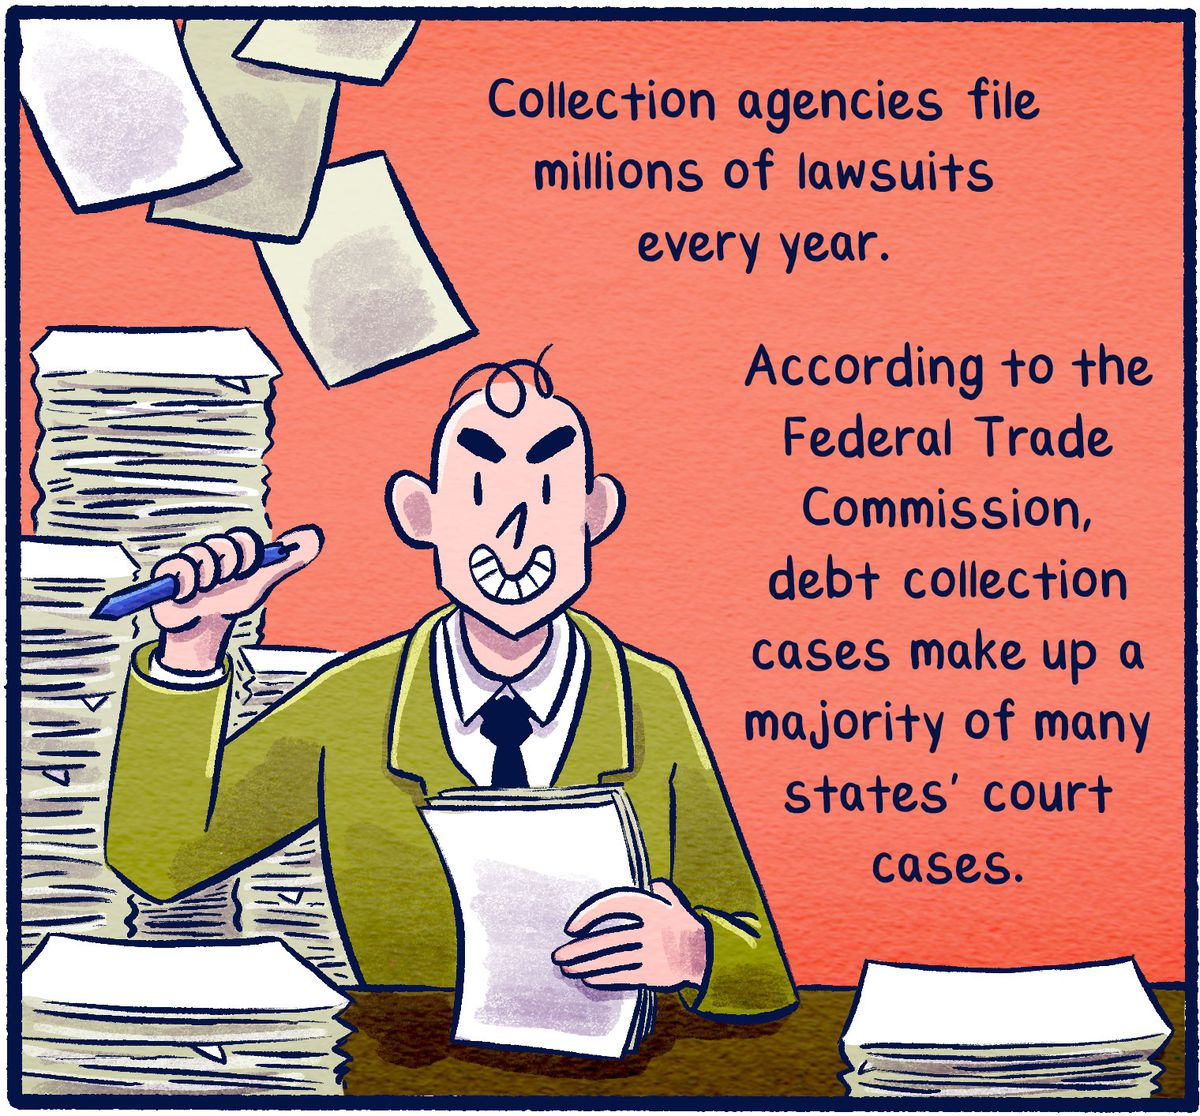 Collection agencies file millions of lawsuits every year. According to the Federal Trade Commission, debt collection cases make up a majority of many states' court cases.